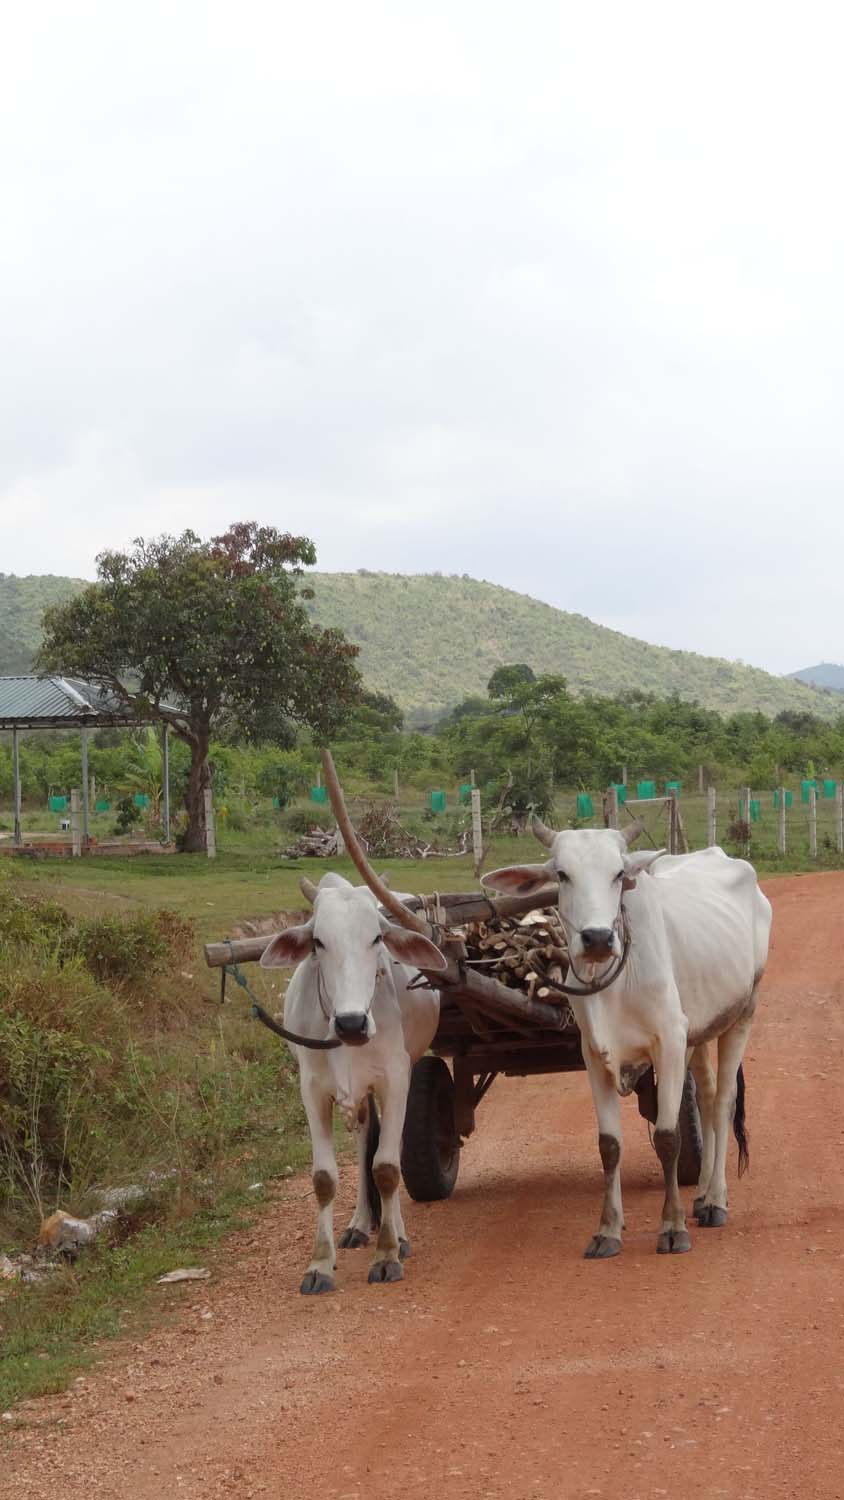 pair of oxen pulling a cart